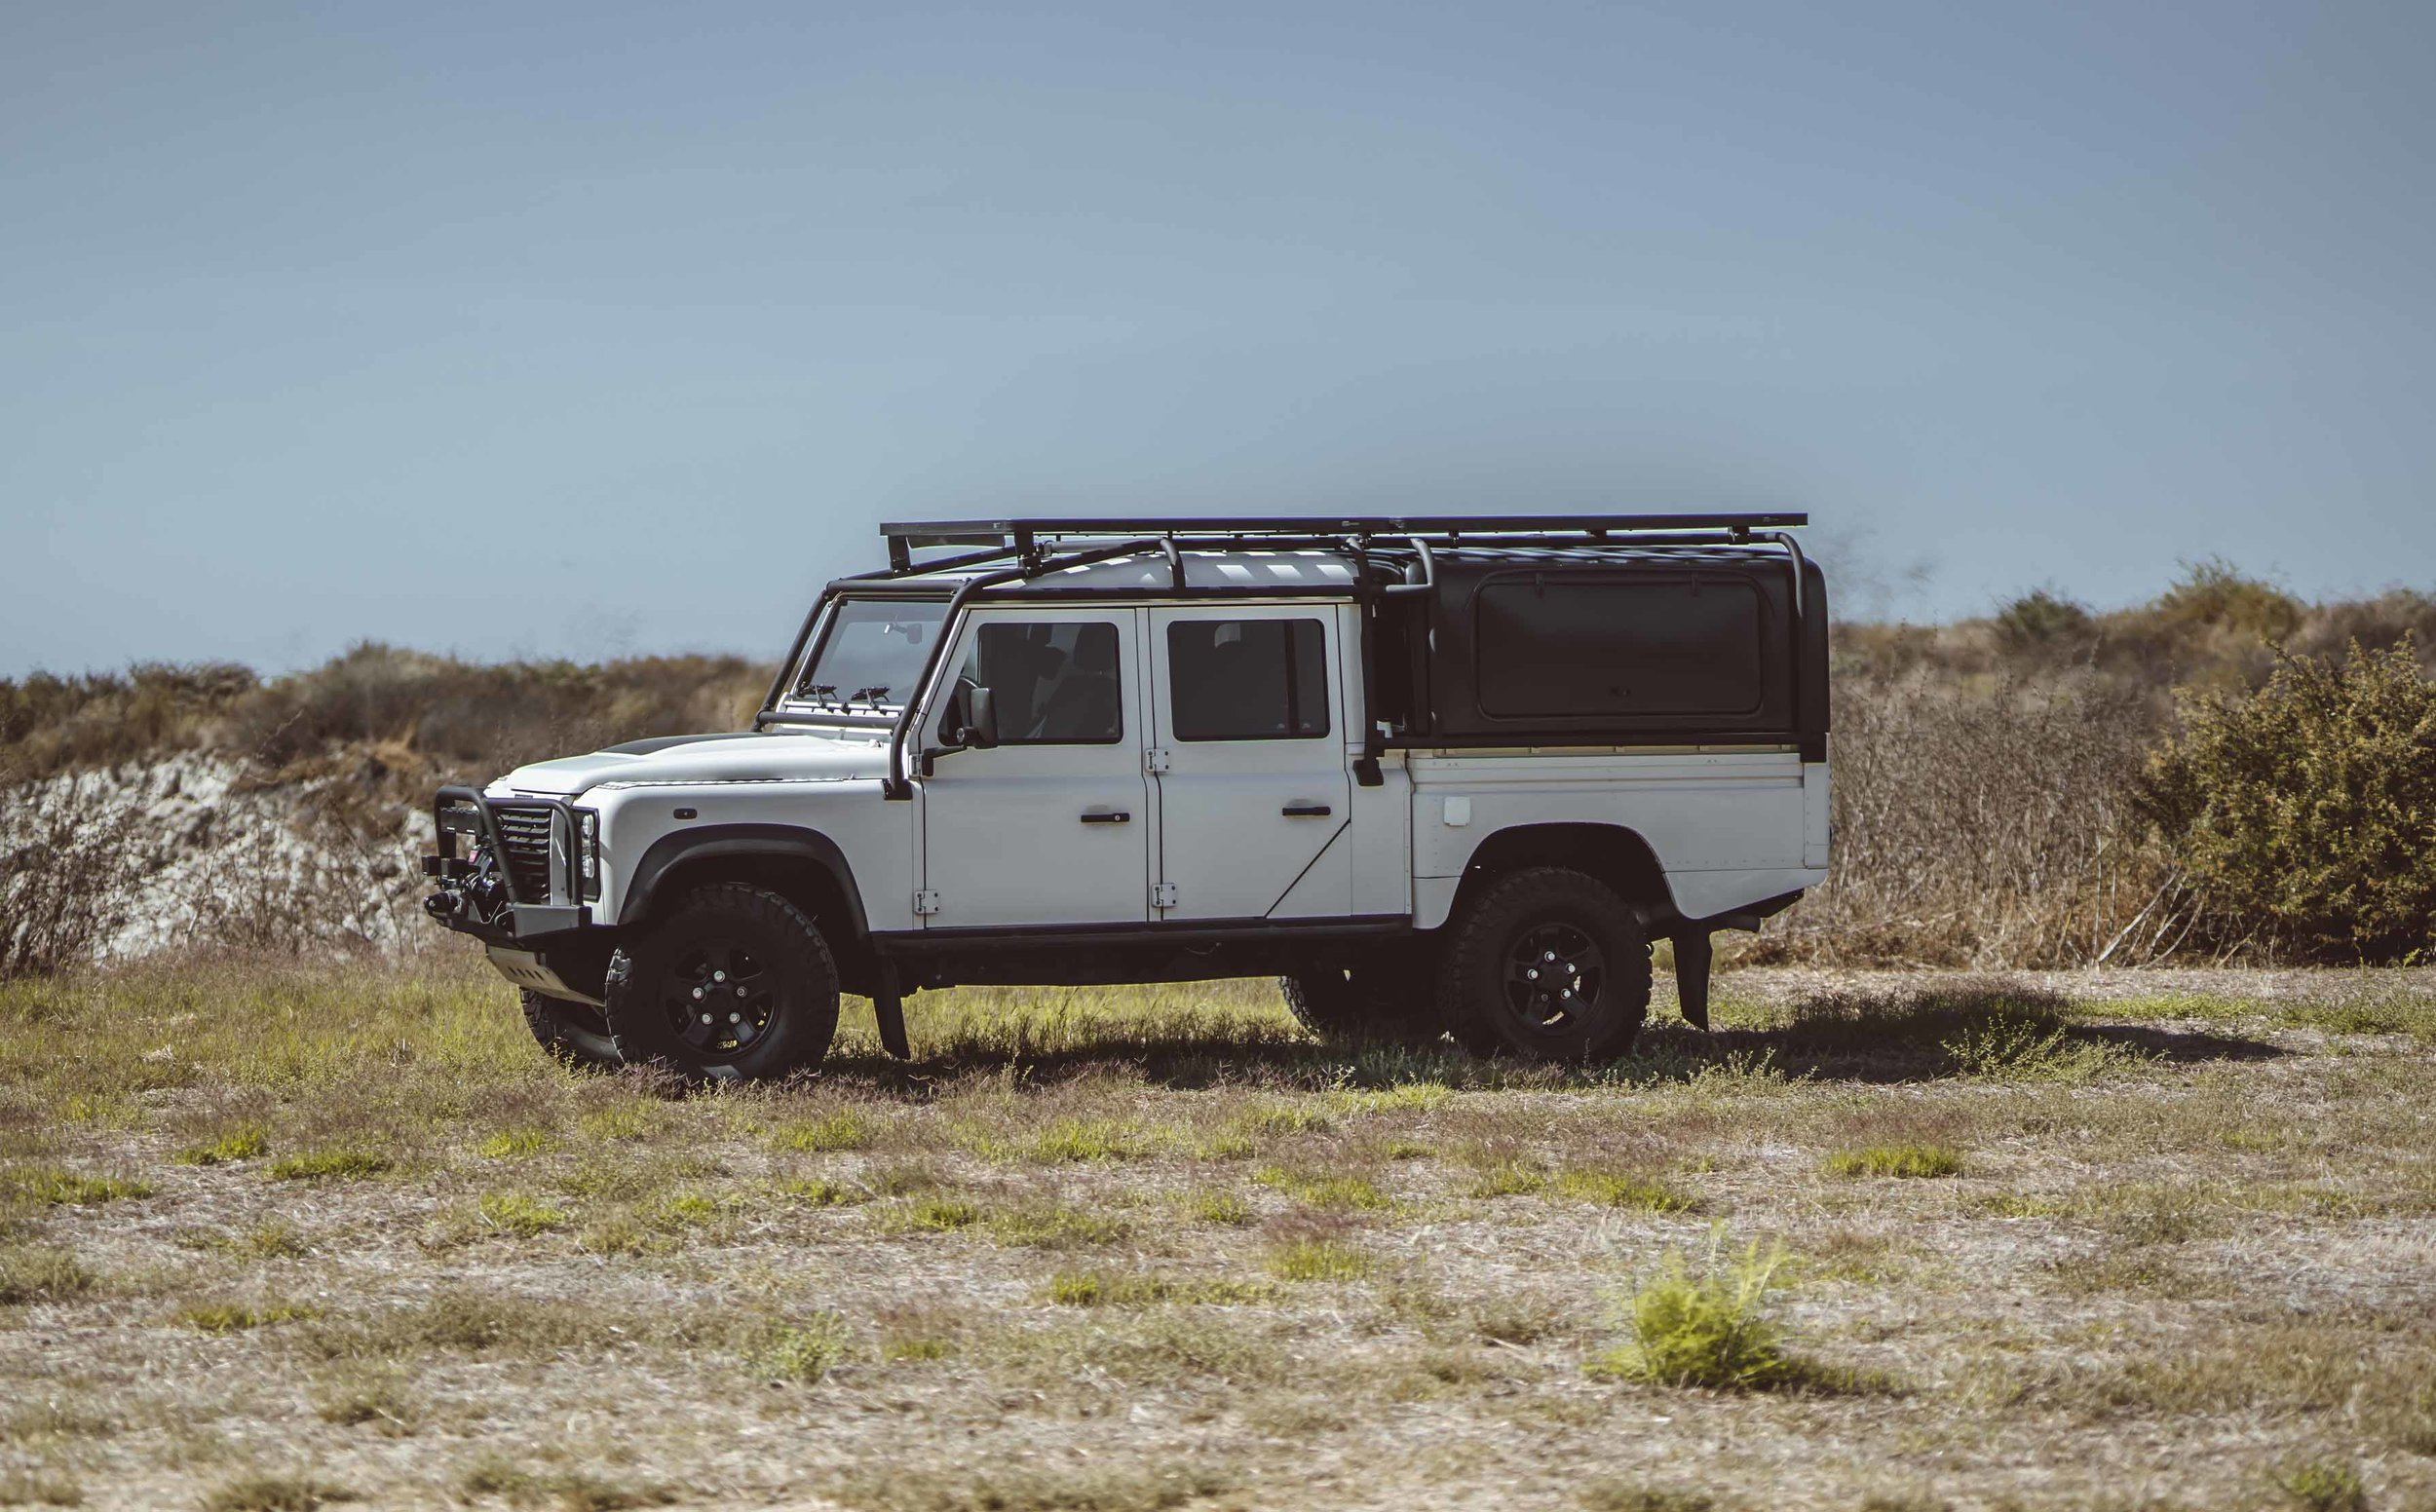 Land_Rover_130_Expedition_large_0002_Layer 40.jpg